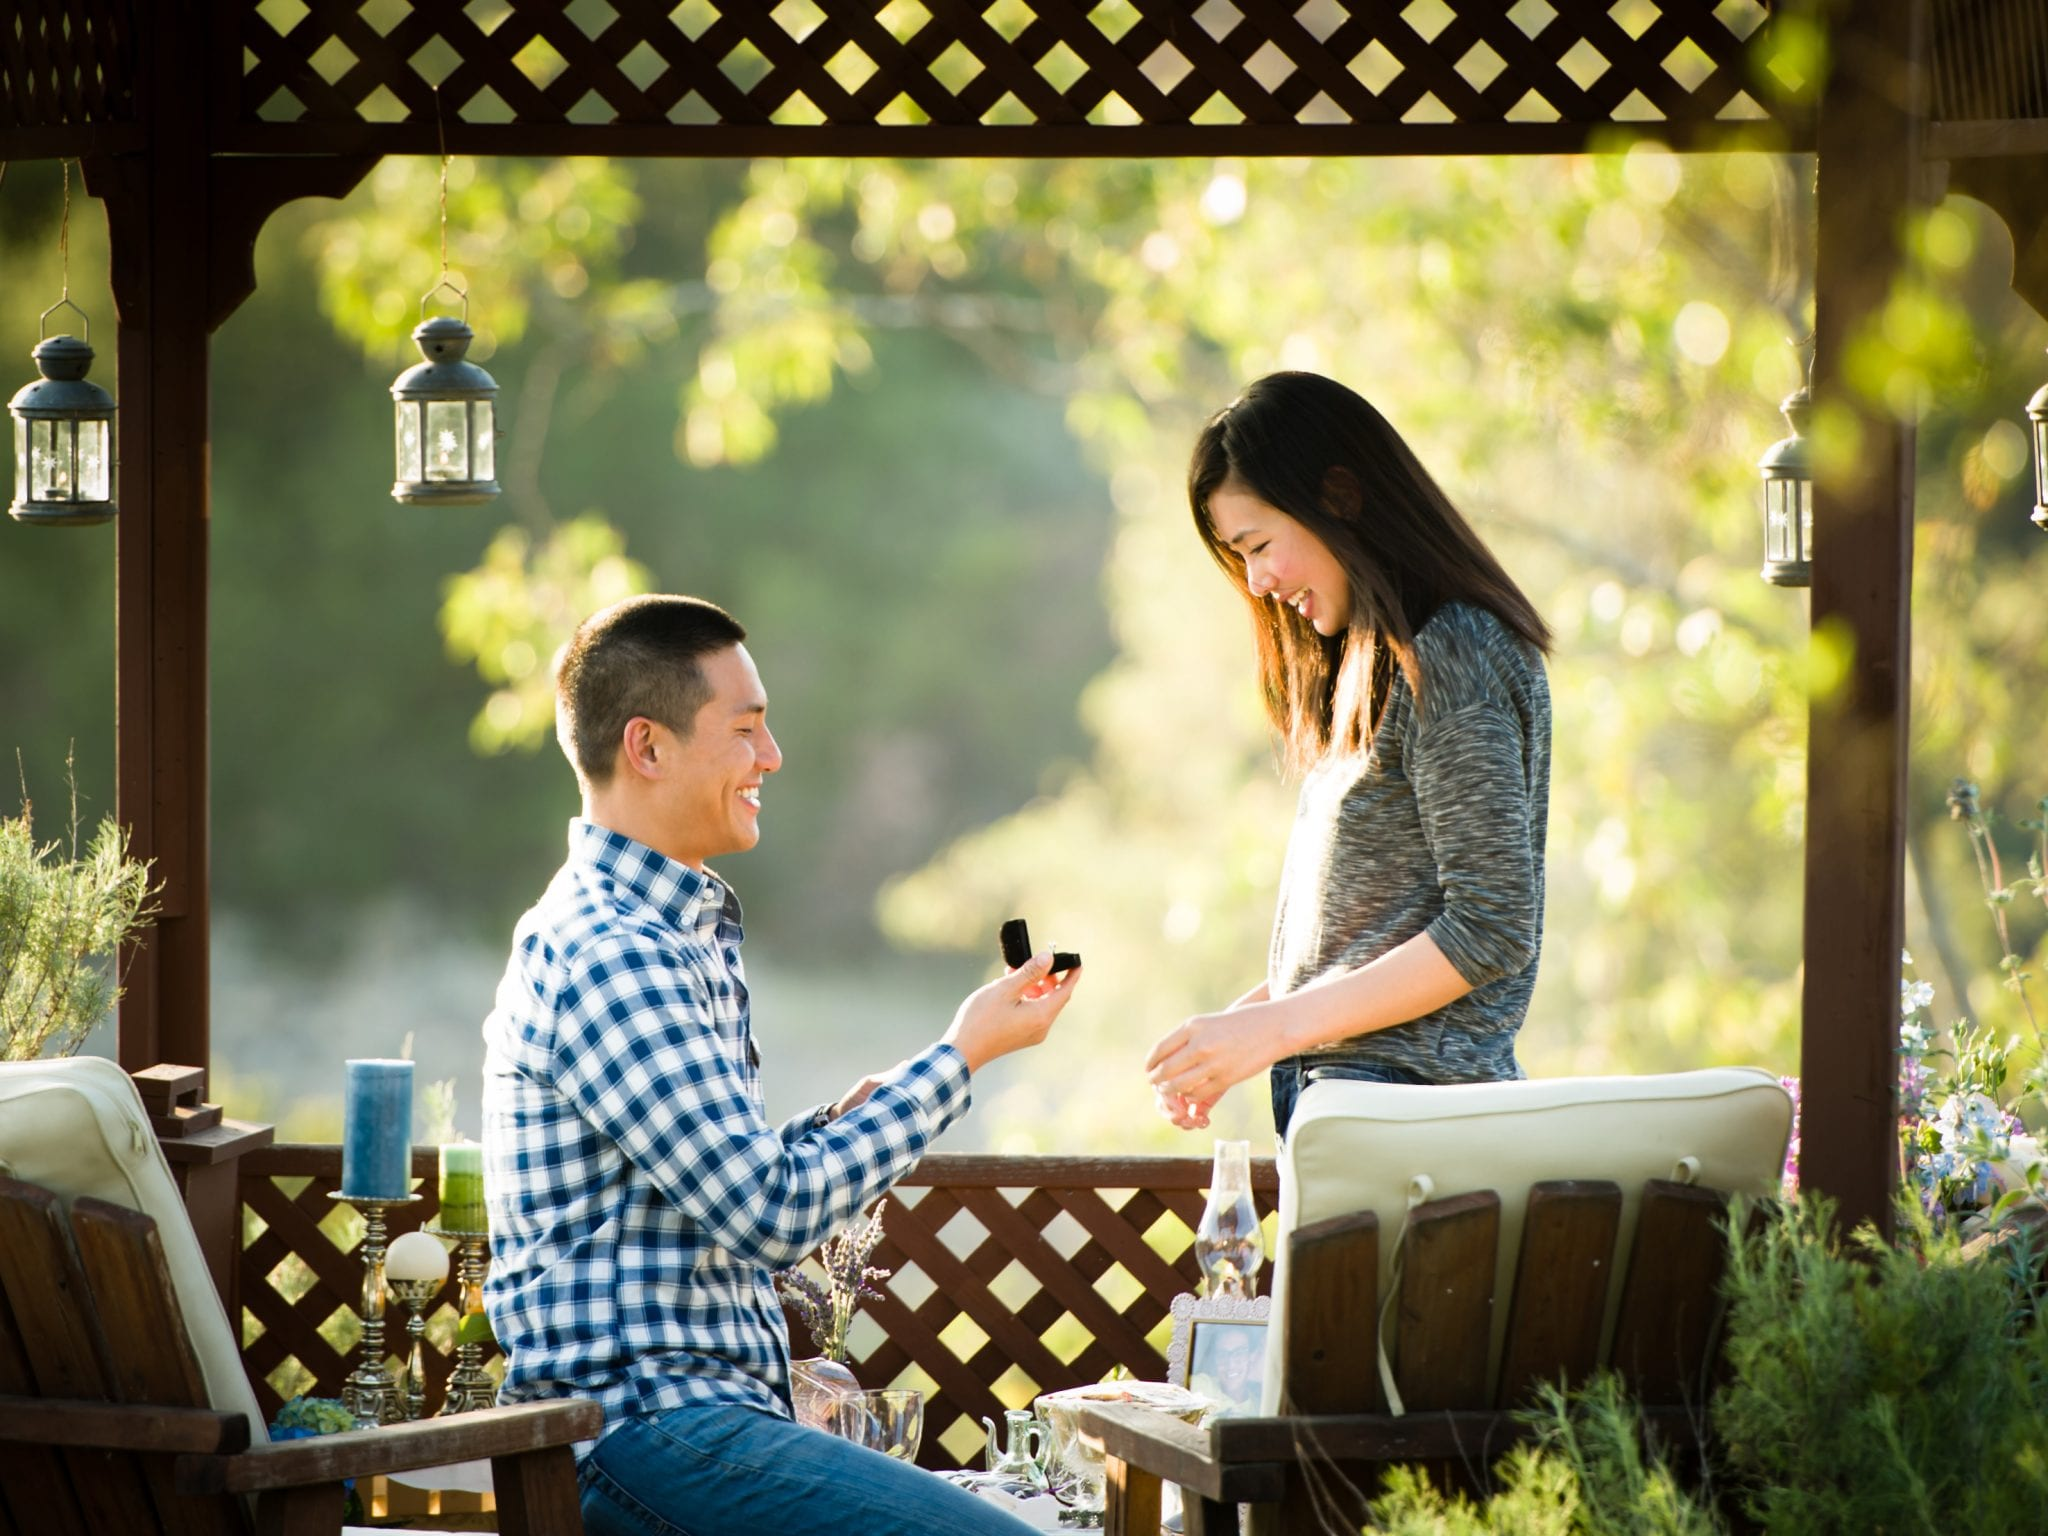 Best ways to propose a girl for marriage